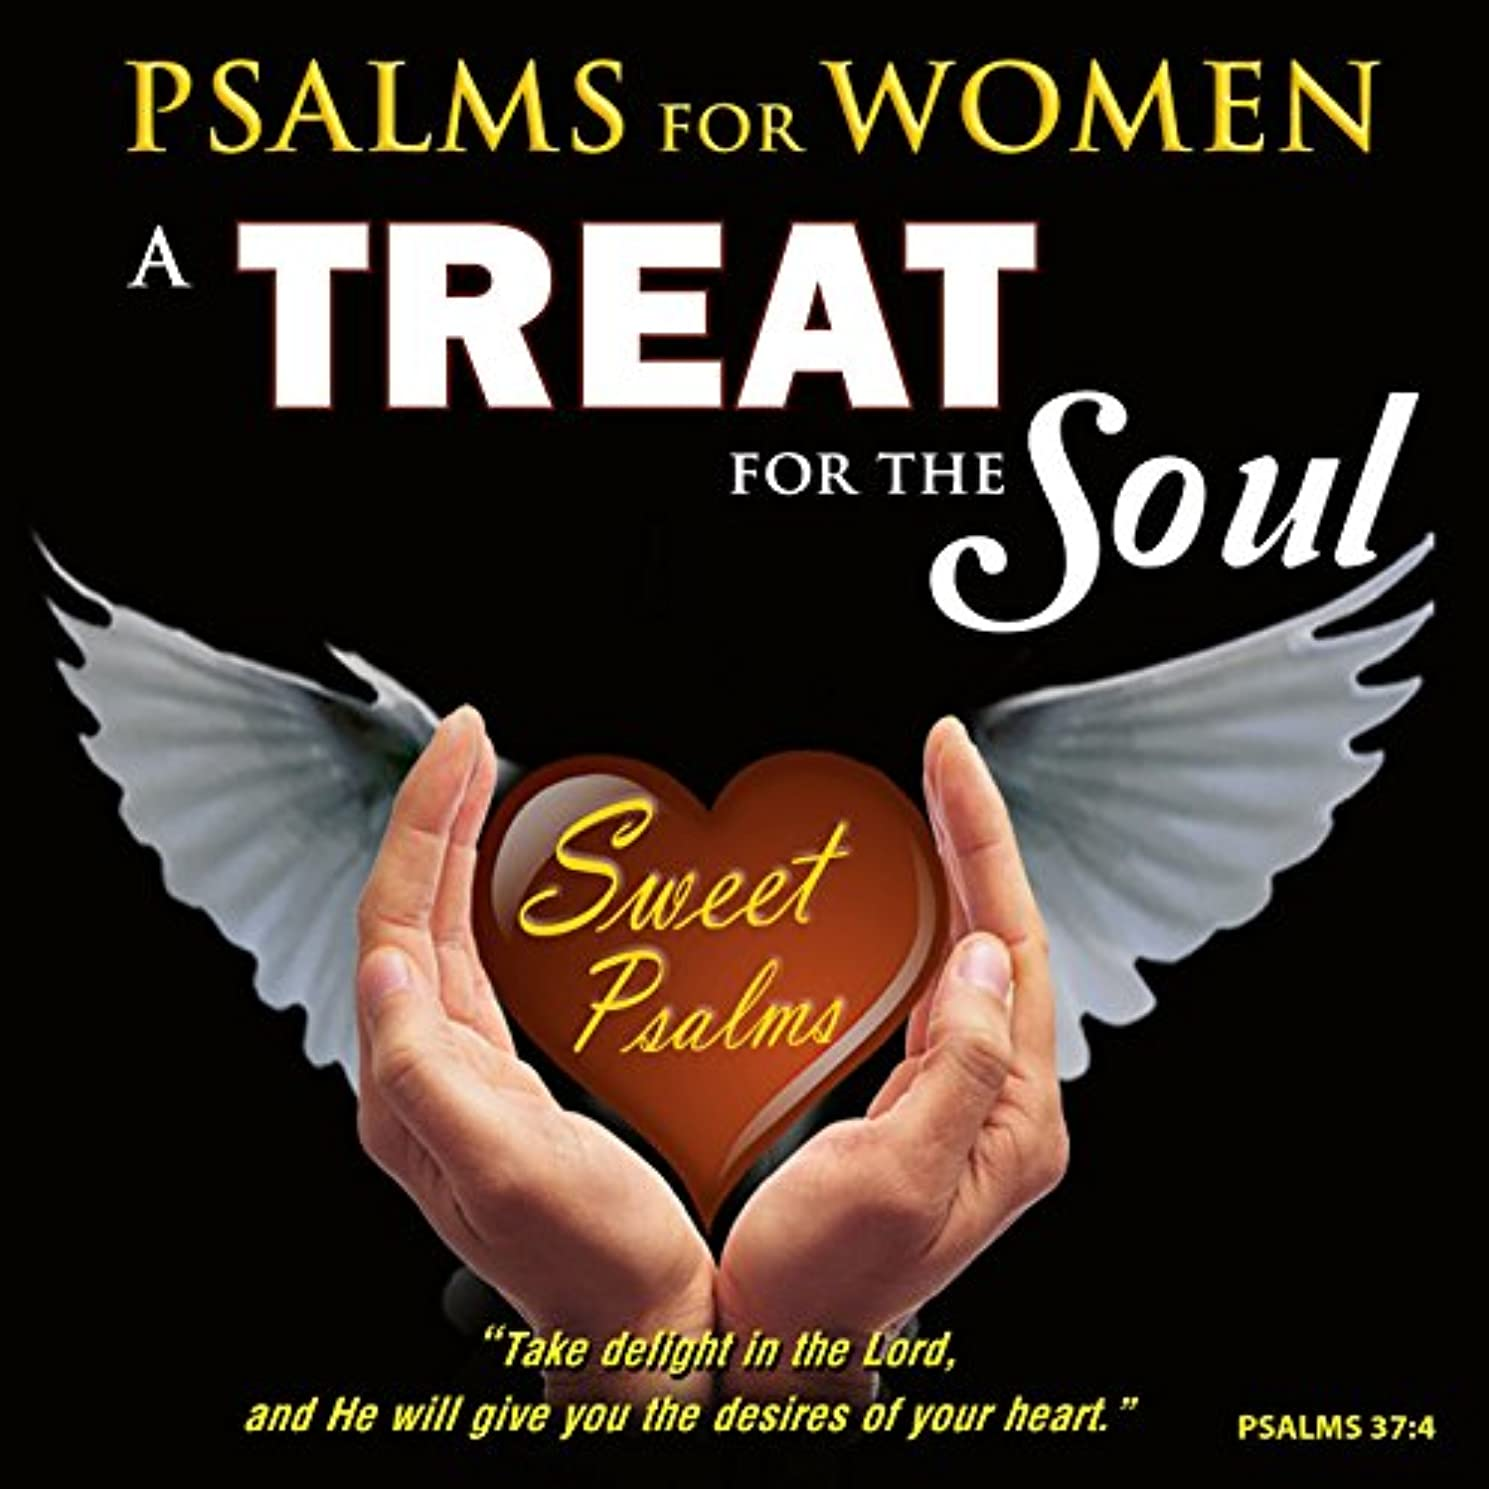 Special Psalms for Women - A Treat for the Soul